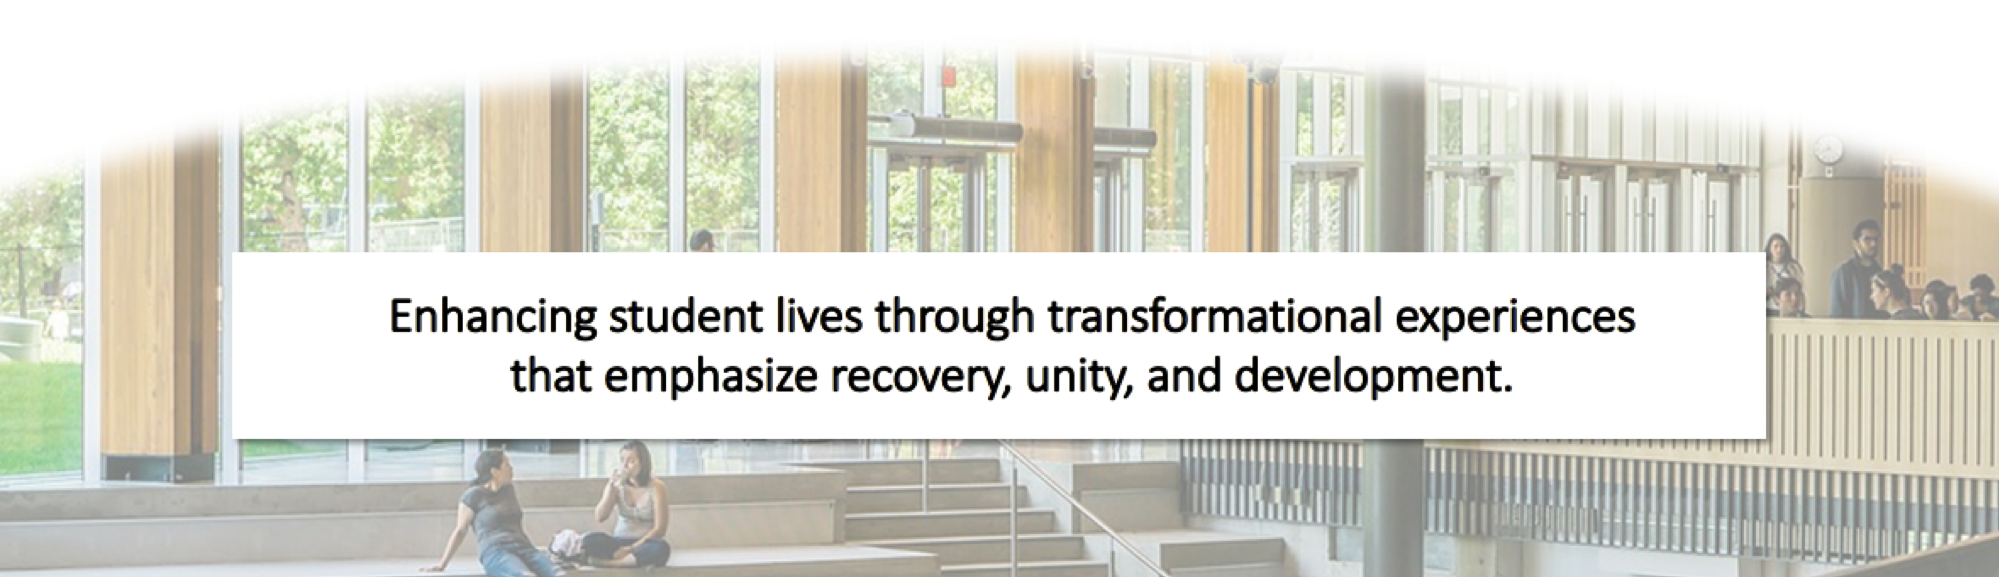 Enhancing student lives through transformational experiences that emphasize recovery, unity, and development.